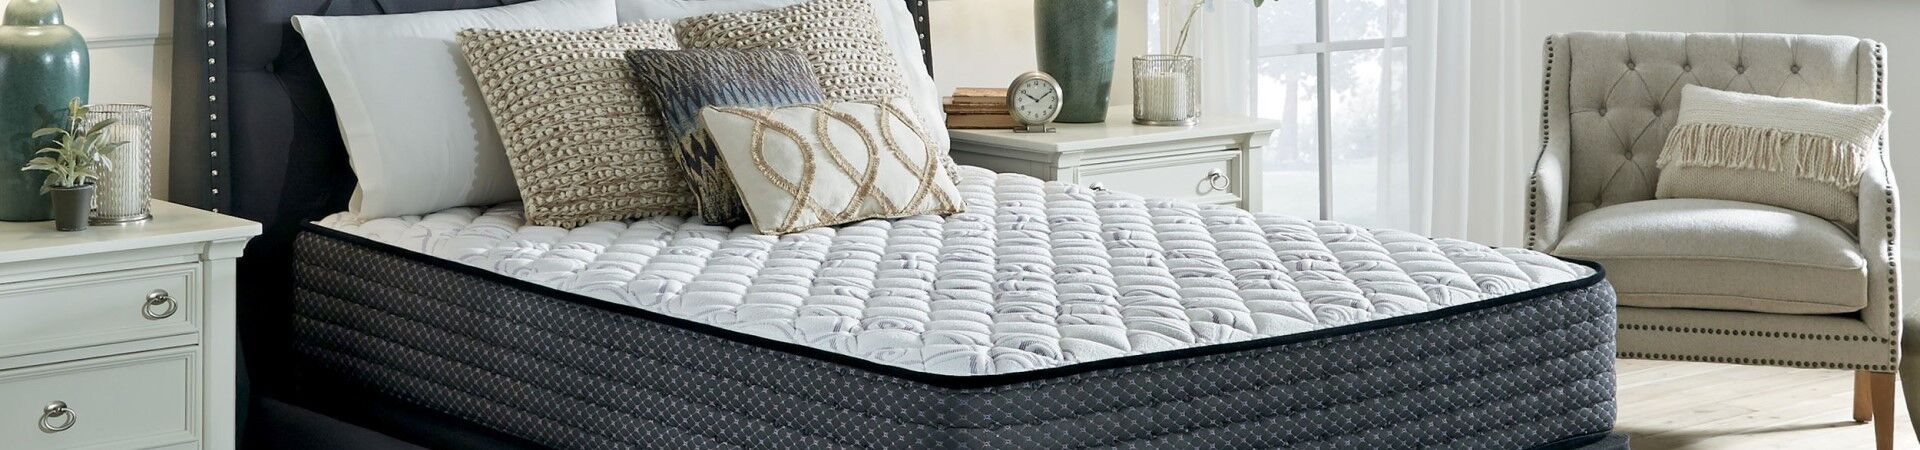 Best Luxury Mattresses Reviewed in Detail